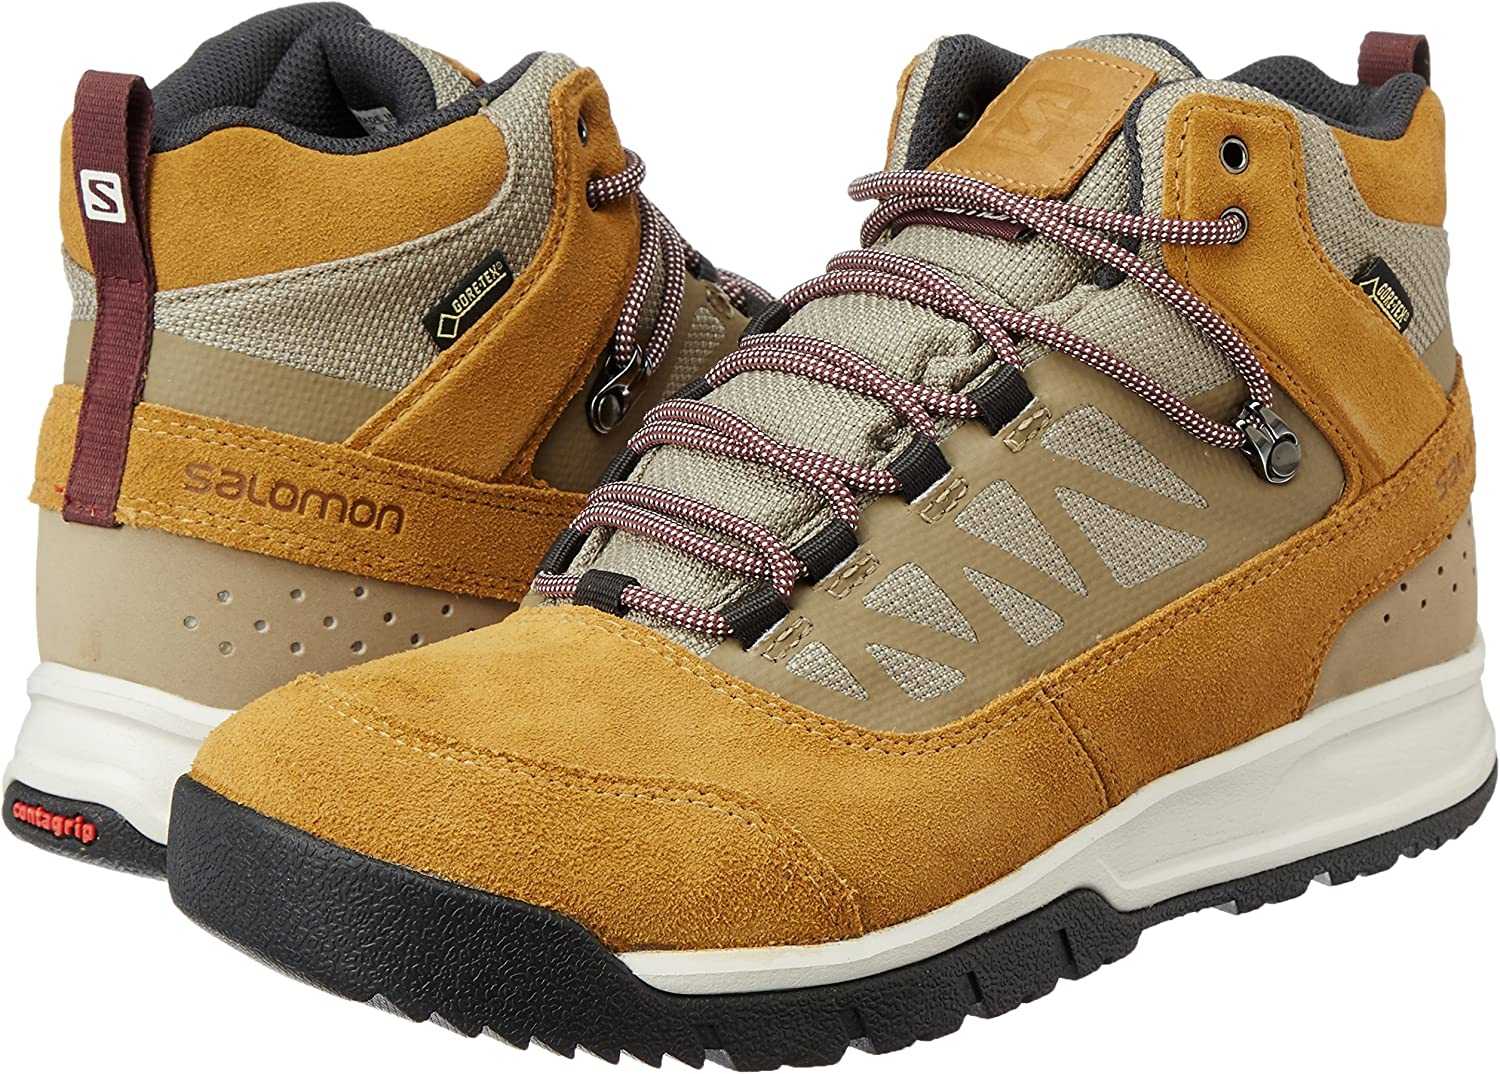 Salomon Instinct Travel GTX, Chaussures de trekking et